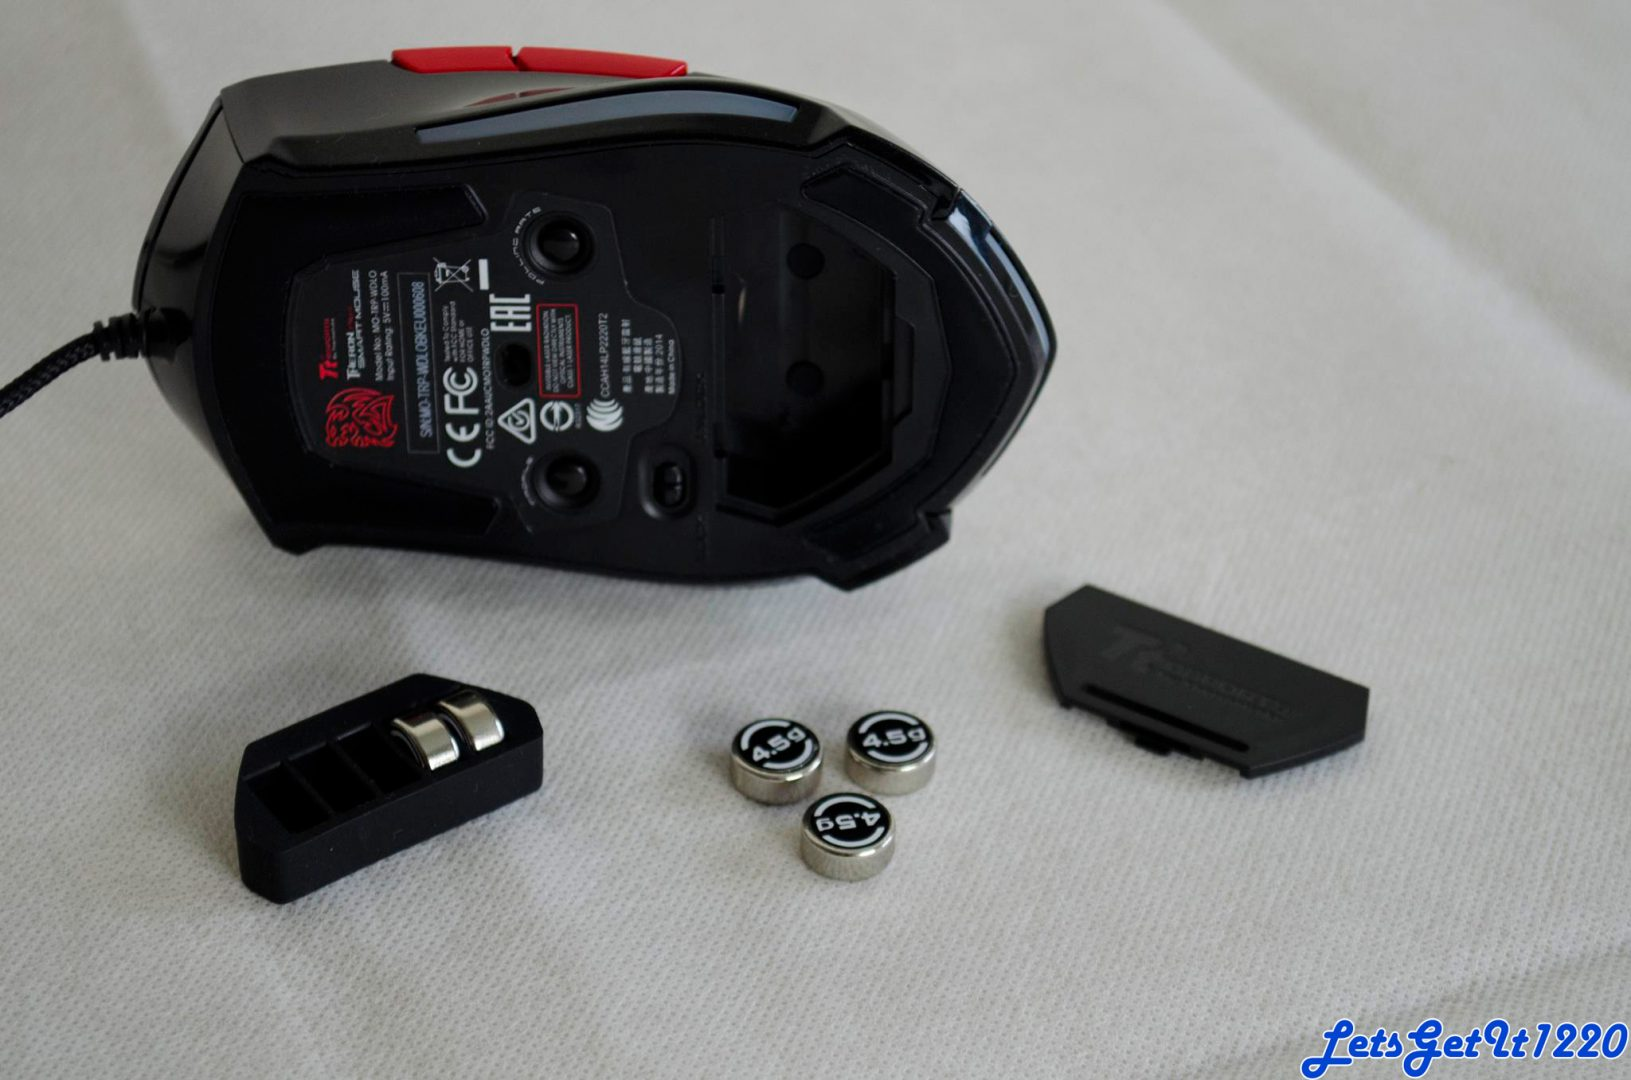 Tt eSPORTS Theron Plus mouse weights